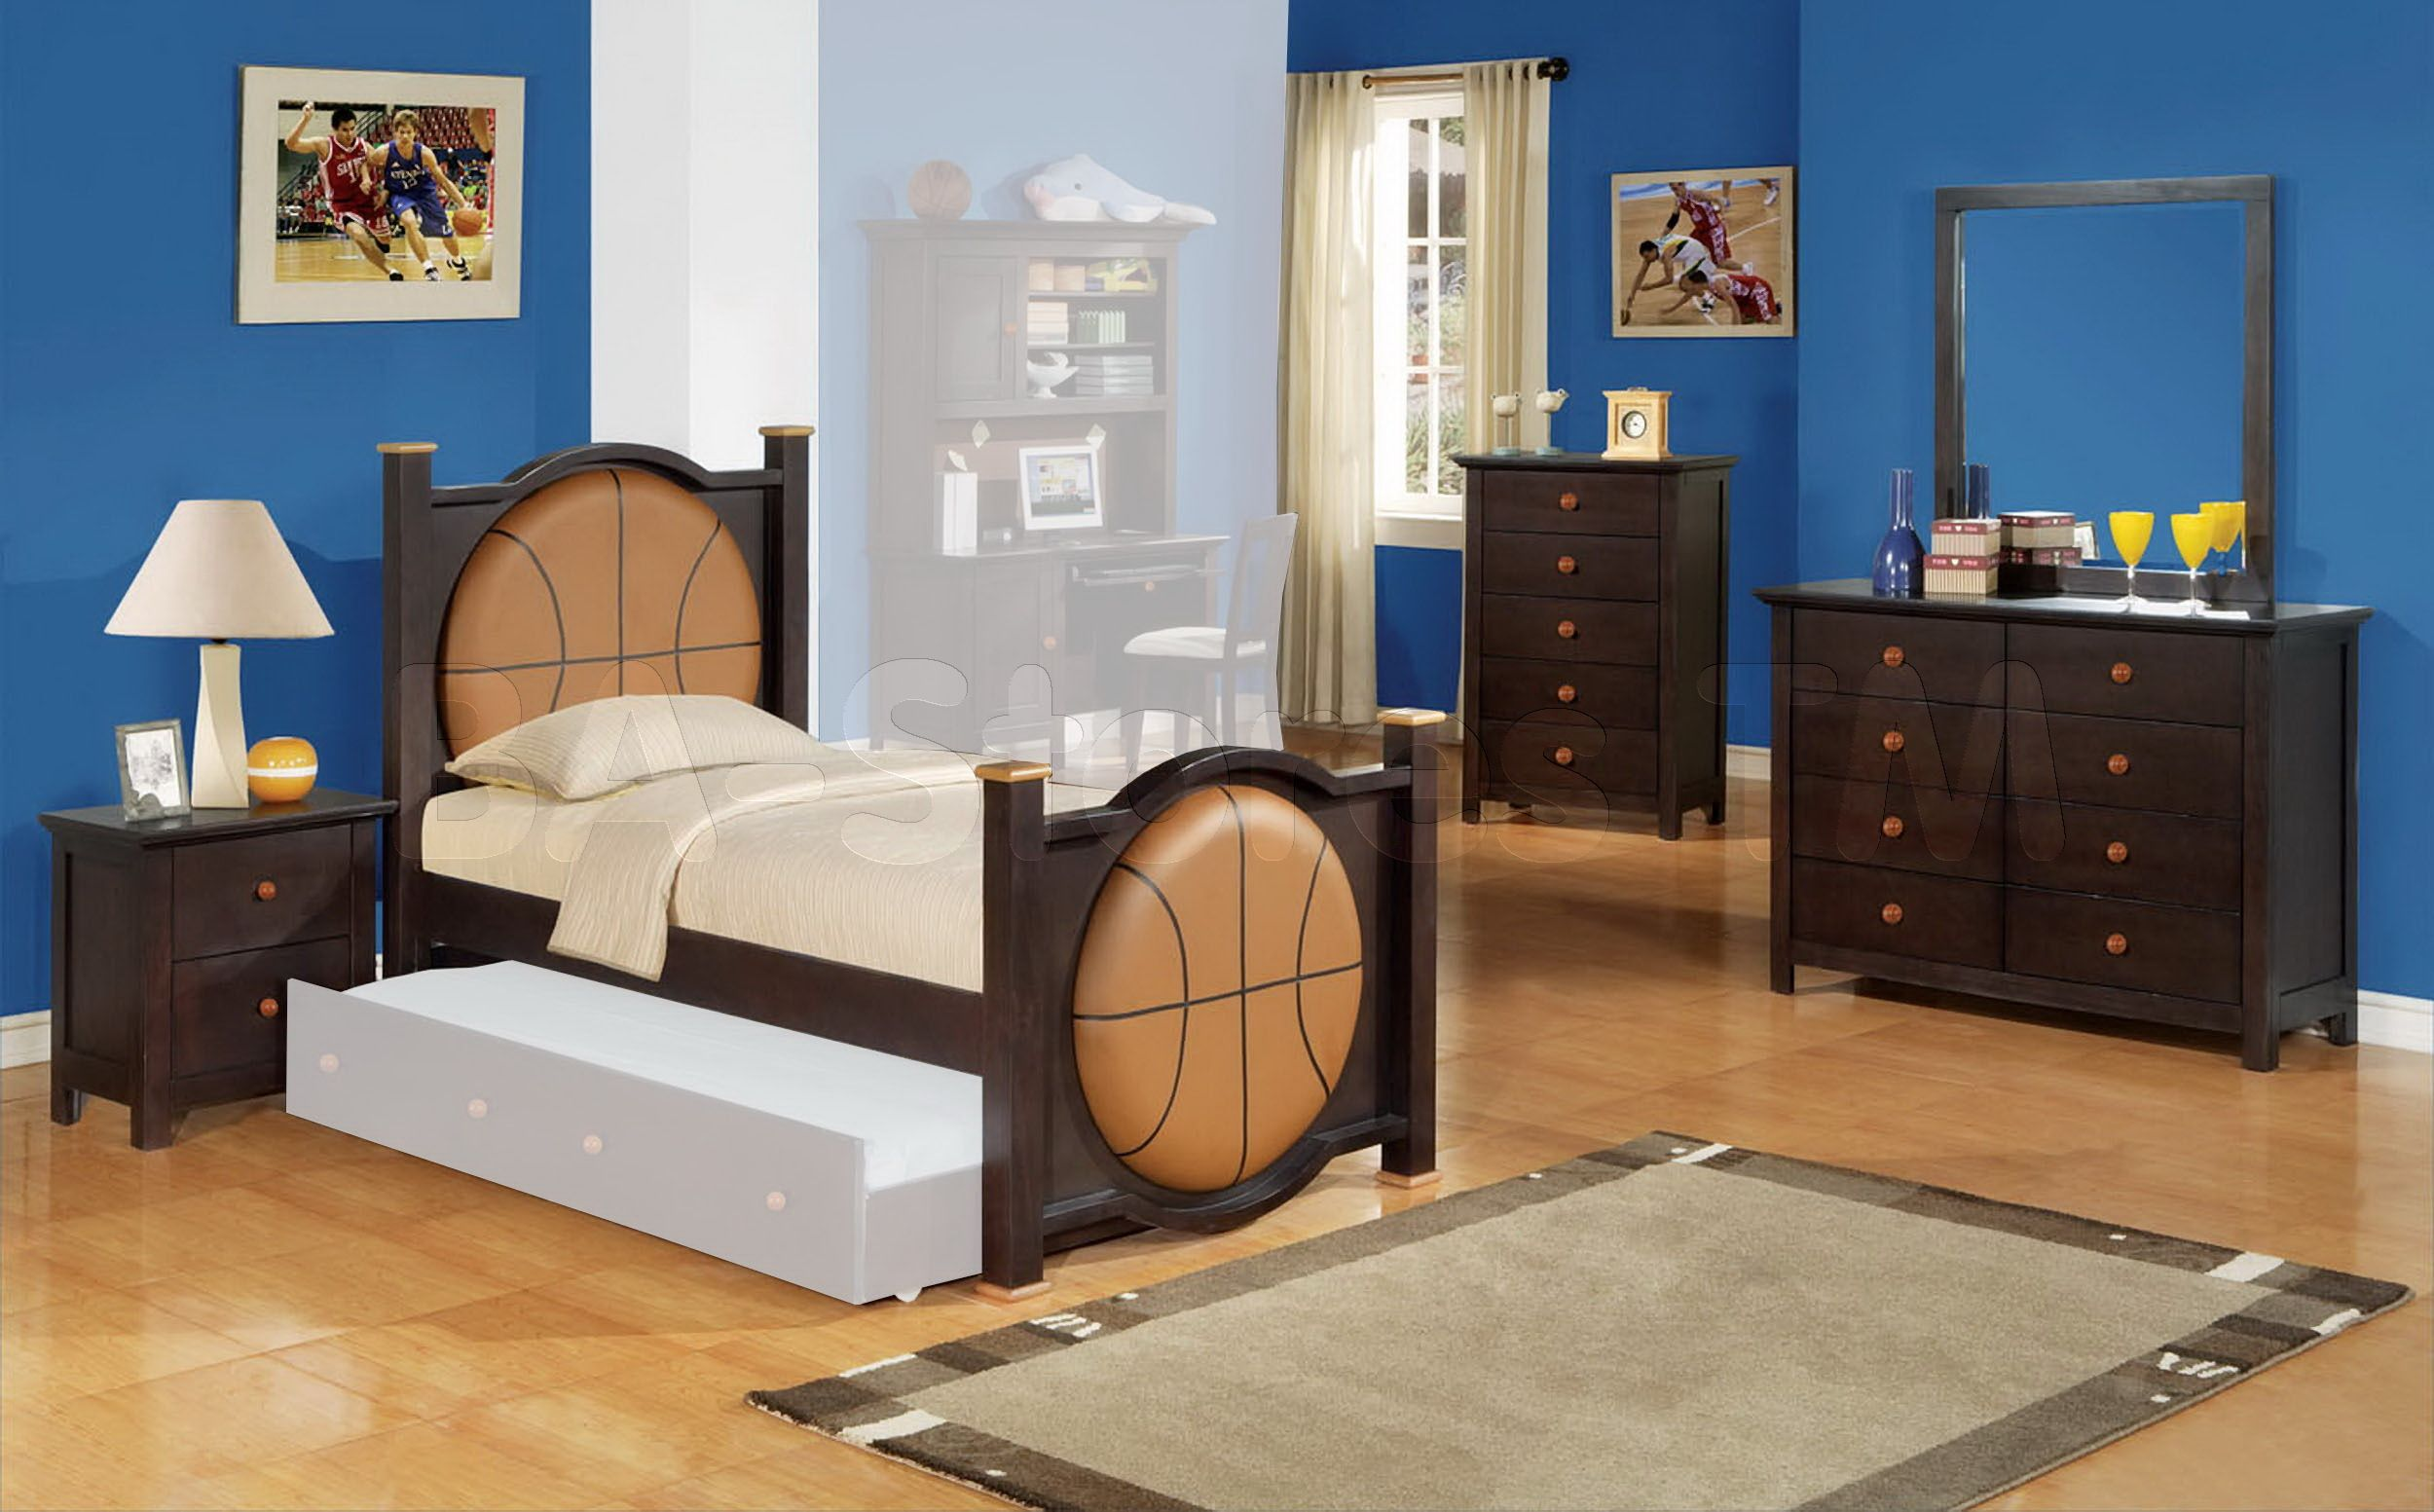 20 Awesome Modern Bedroom Furniture Designs: Amazing Basketball Theme Cool Rooms For Boys By A Unique